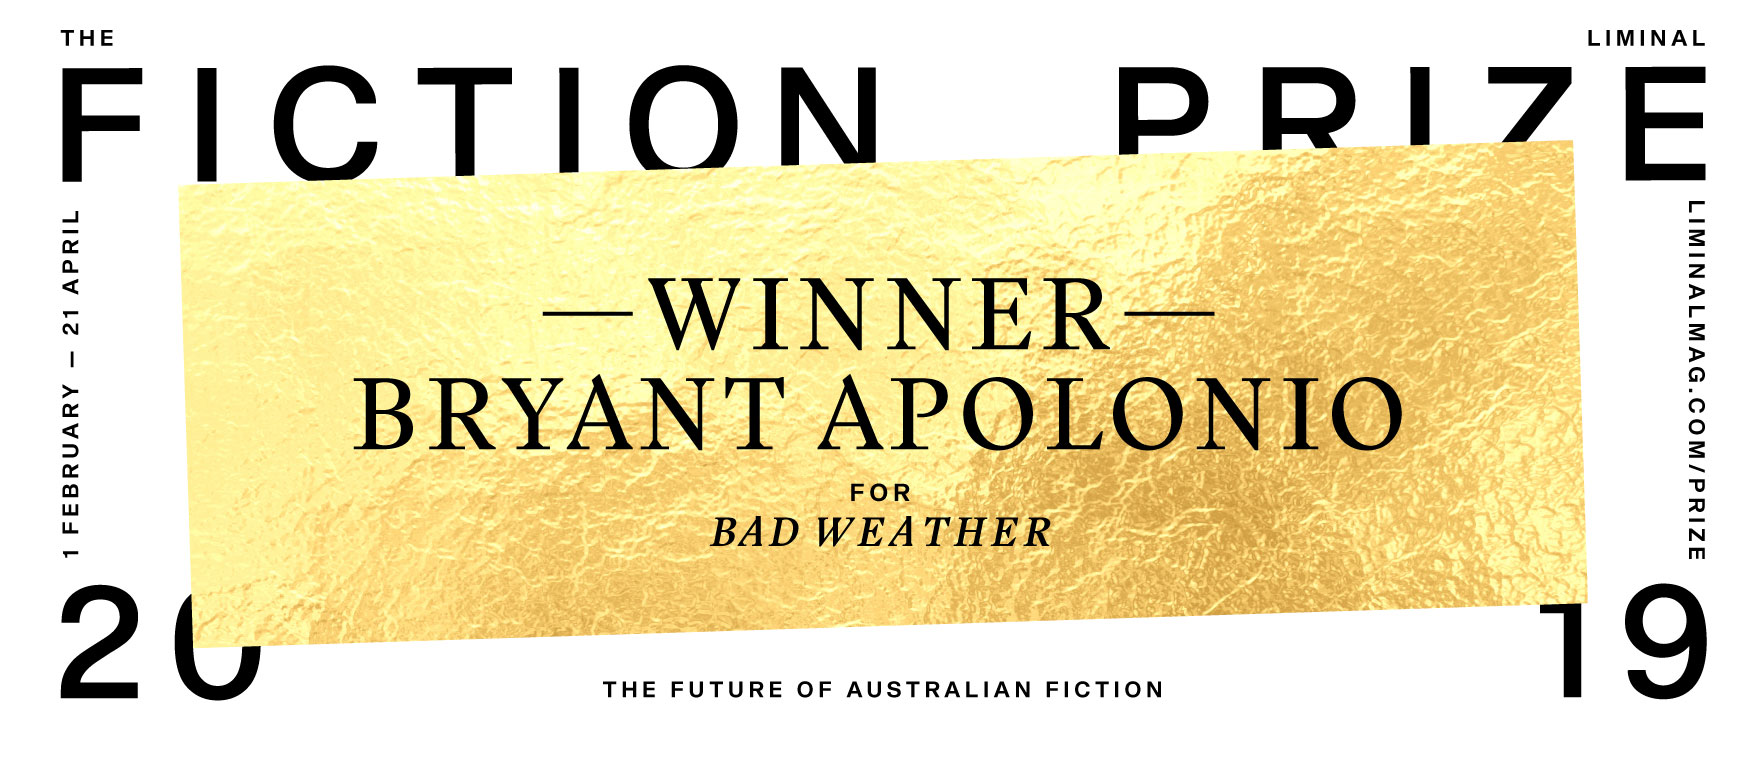 LIMINAL_FICTION_PRIZE_WEB_BANNER_V3.jpg